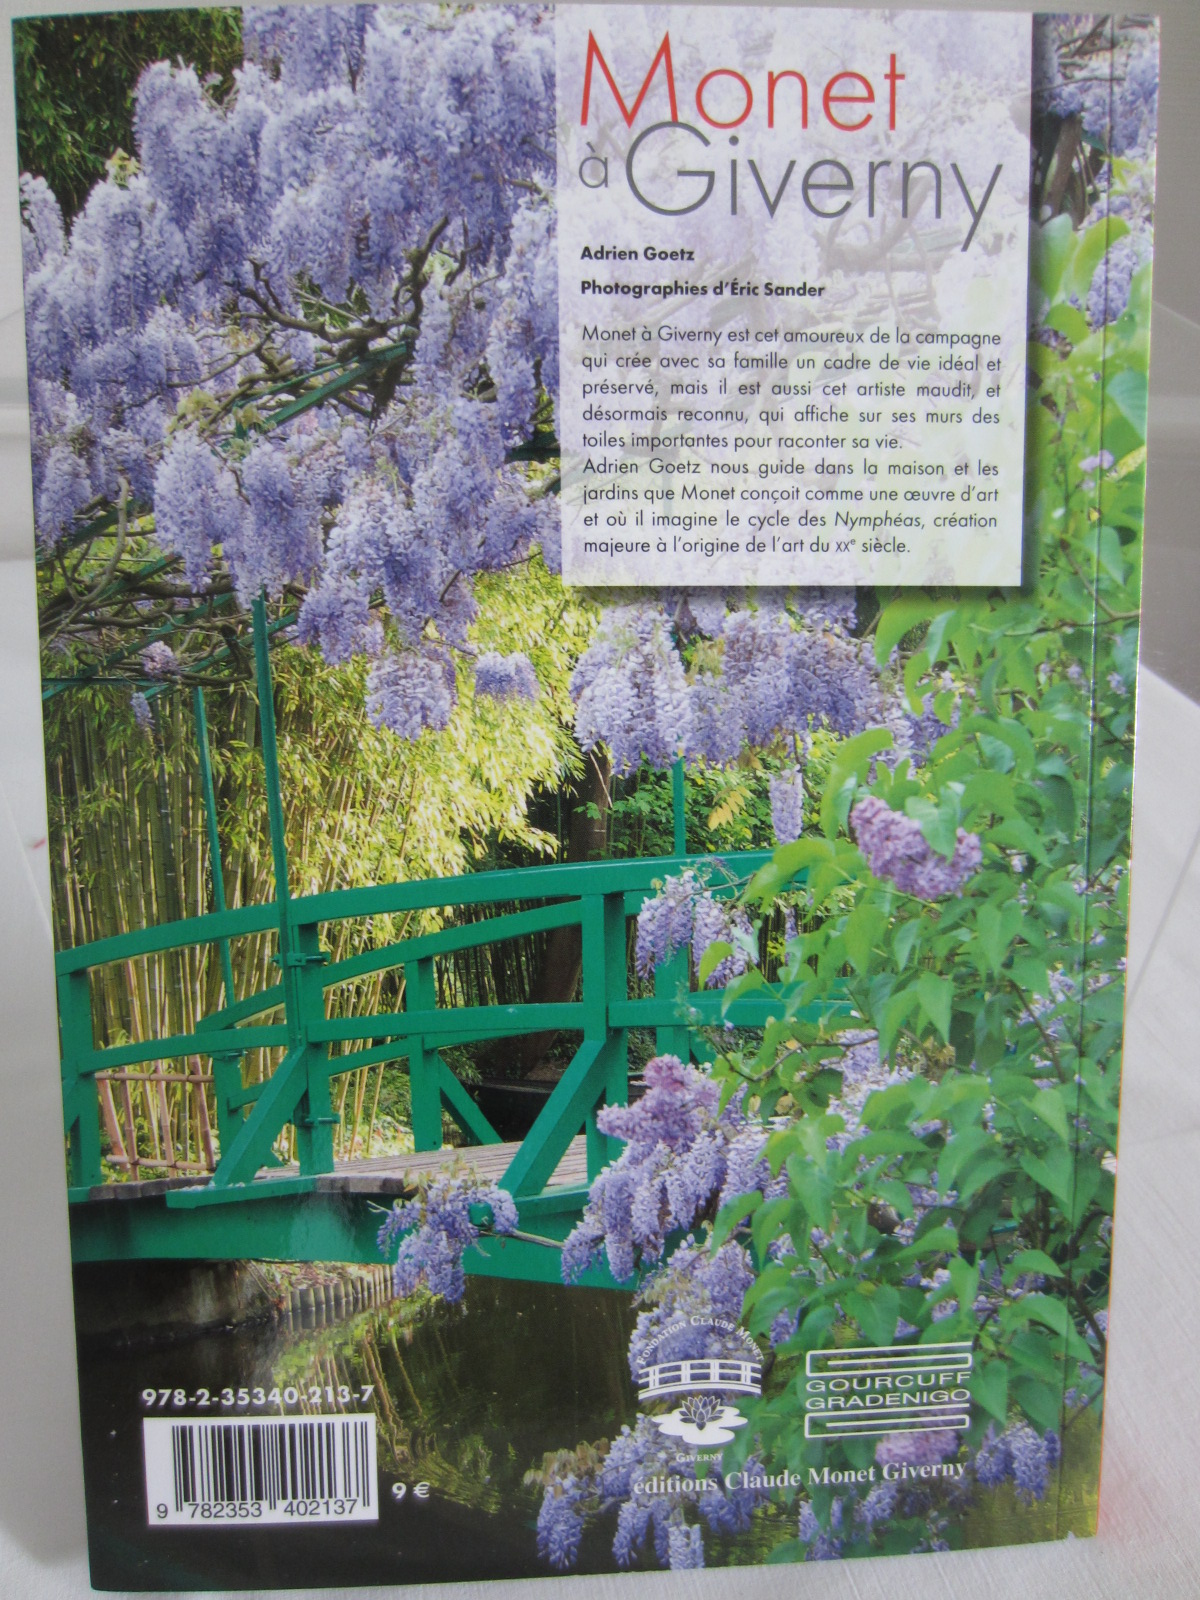 Fondation claude monet monet giverny fondation claude - Livre le jardin de monet ...